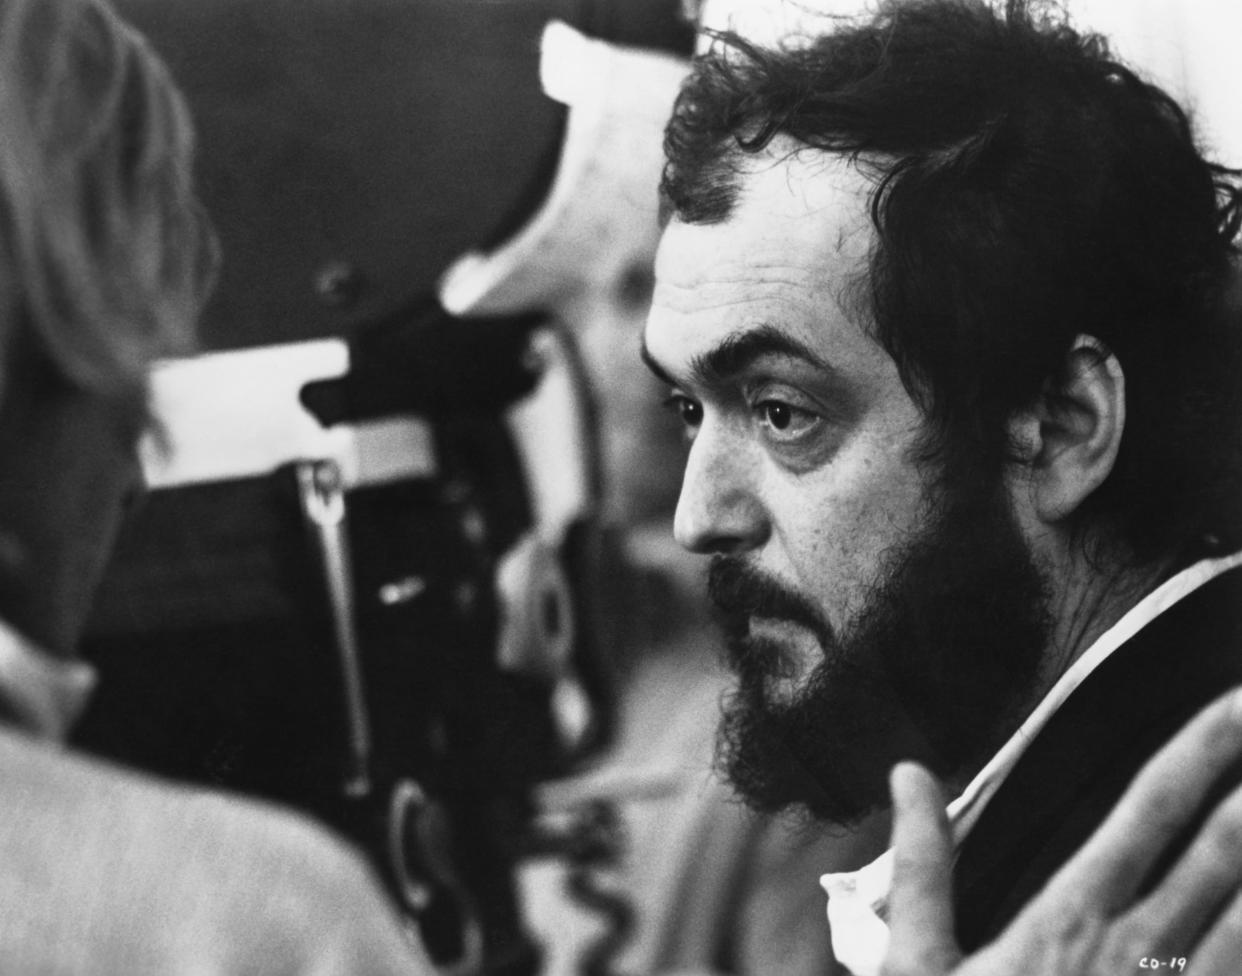 Stanley Kubrick on the set of A Clockwork Orange. The 1971 film tells the story of a violent gang member who goes through aversion therapy. (Photo by �� John Springer Collection/CORBIS/Corbis via Getty Images)